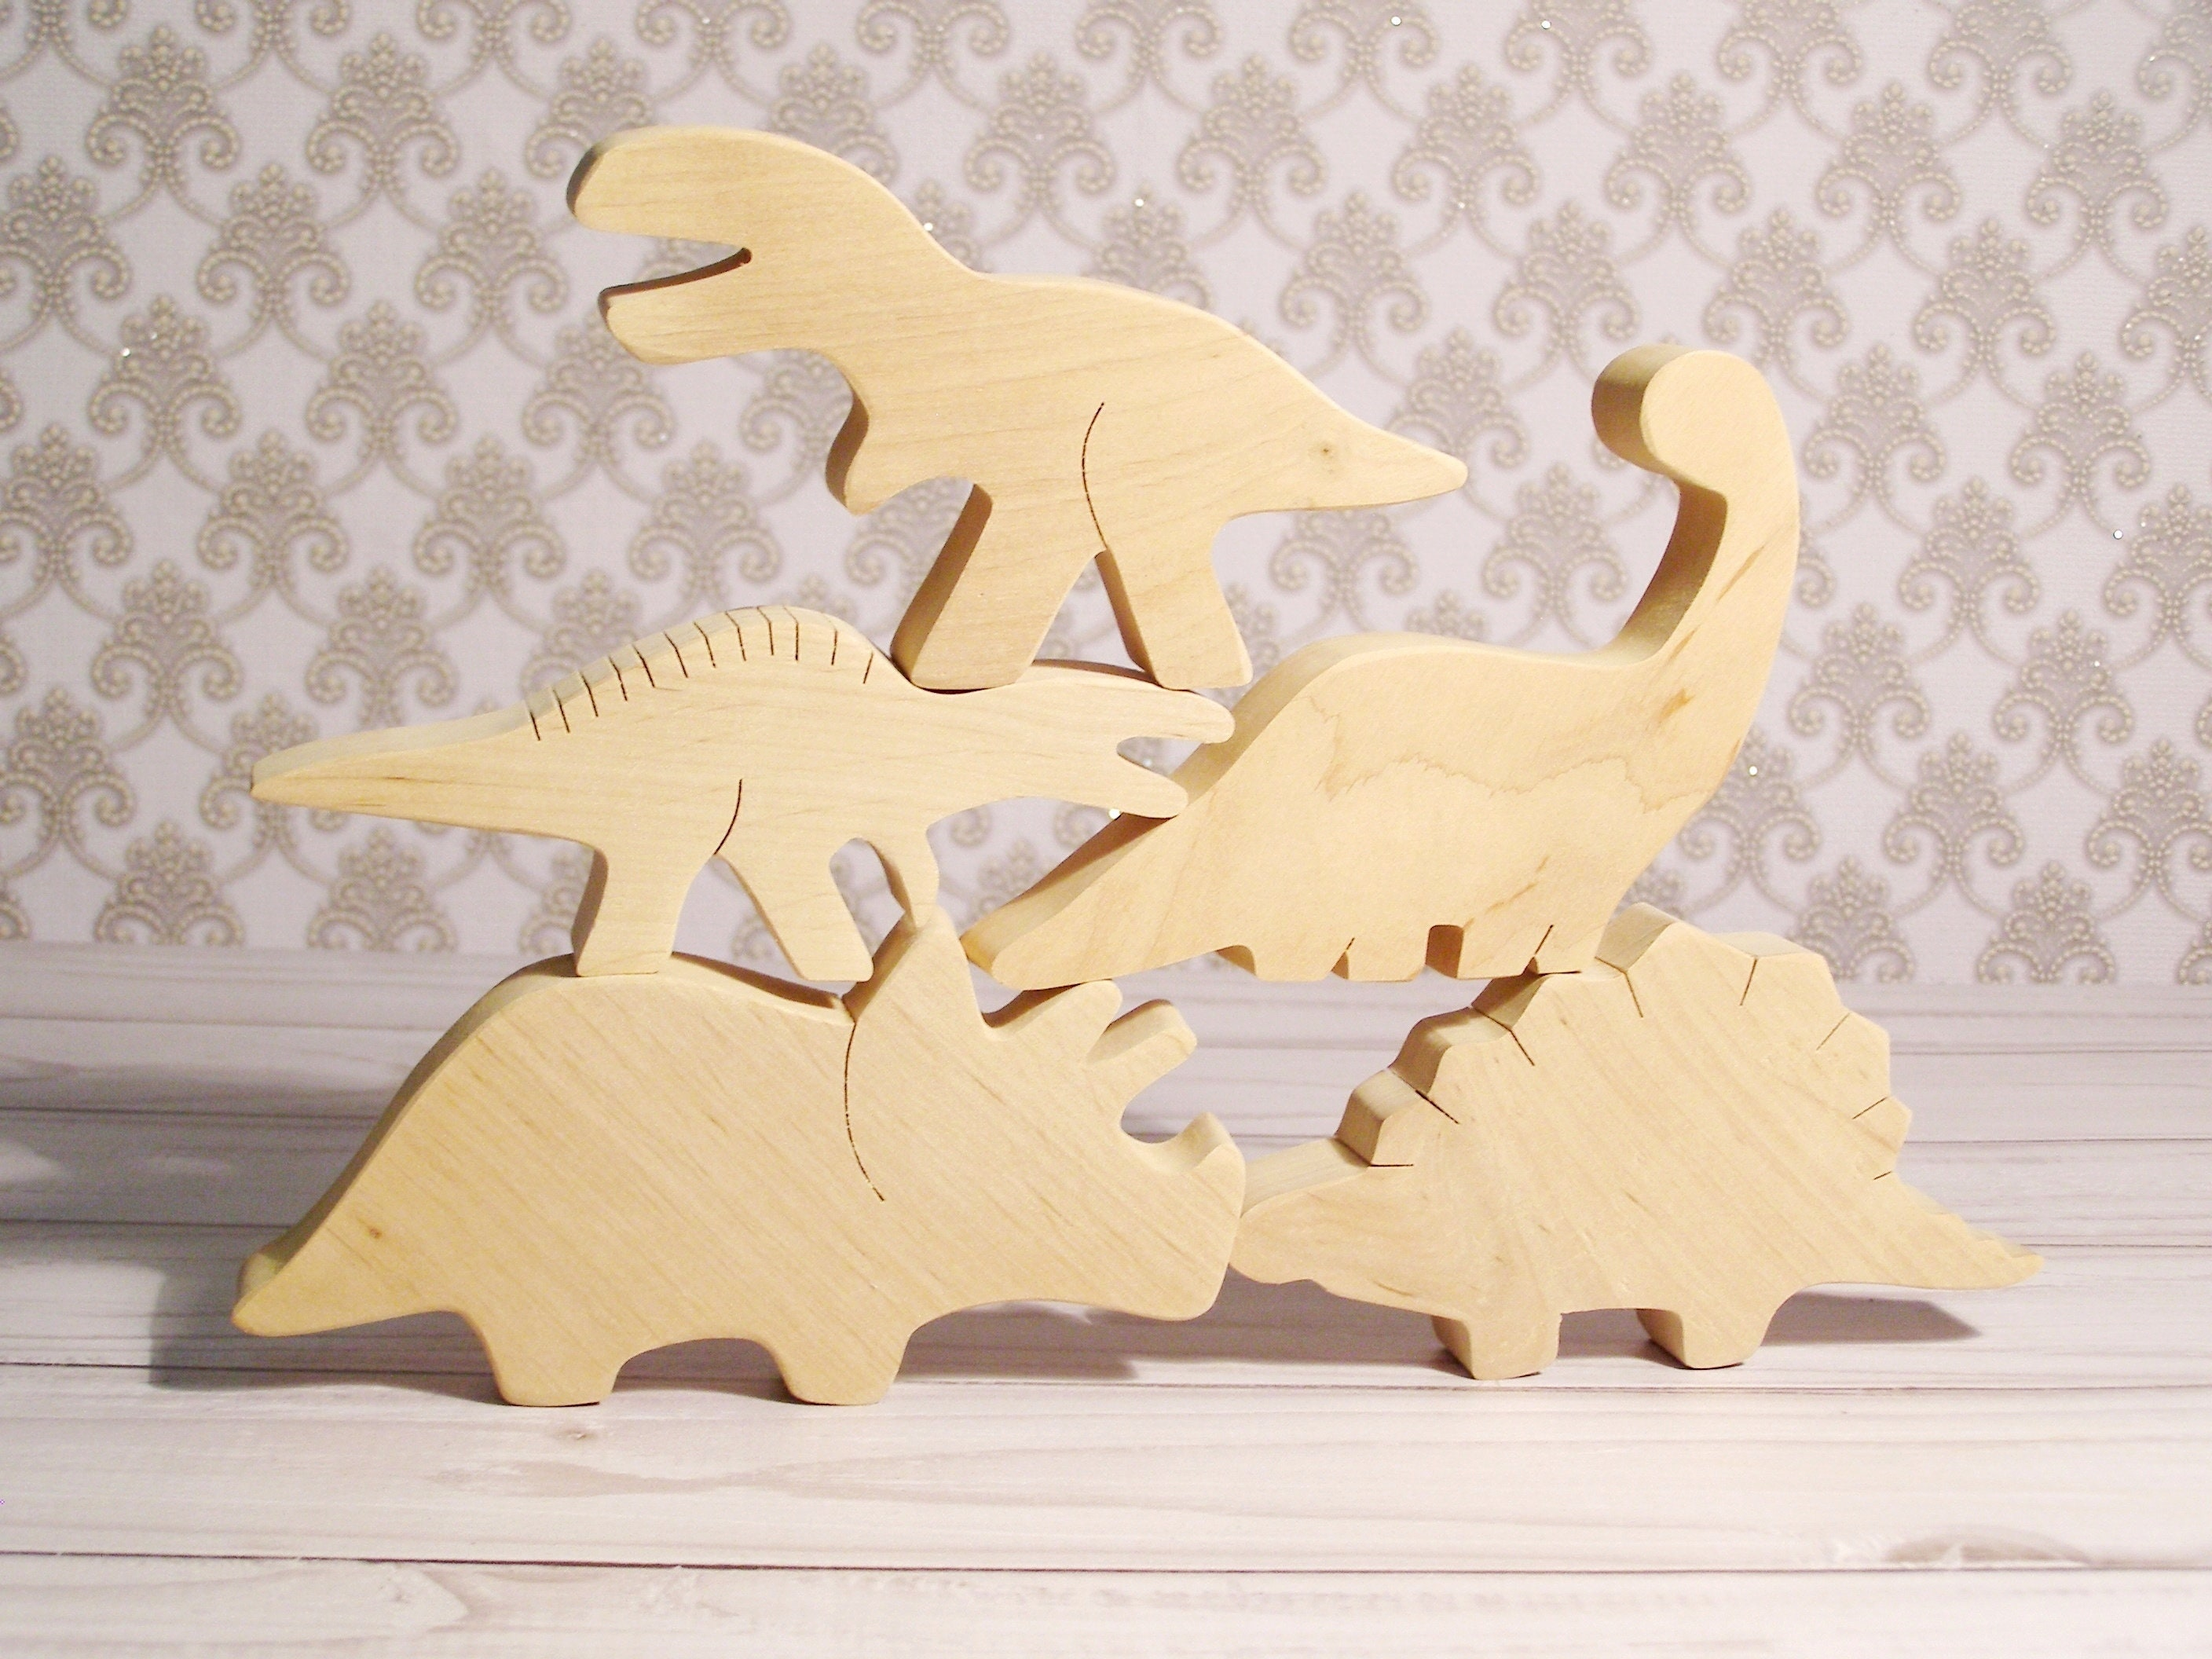 Wooden Dinosaurs Toys 5 Pcs Set Brontosaurus Unfinished Wood Etsy